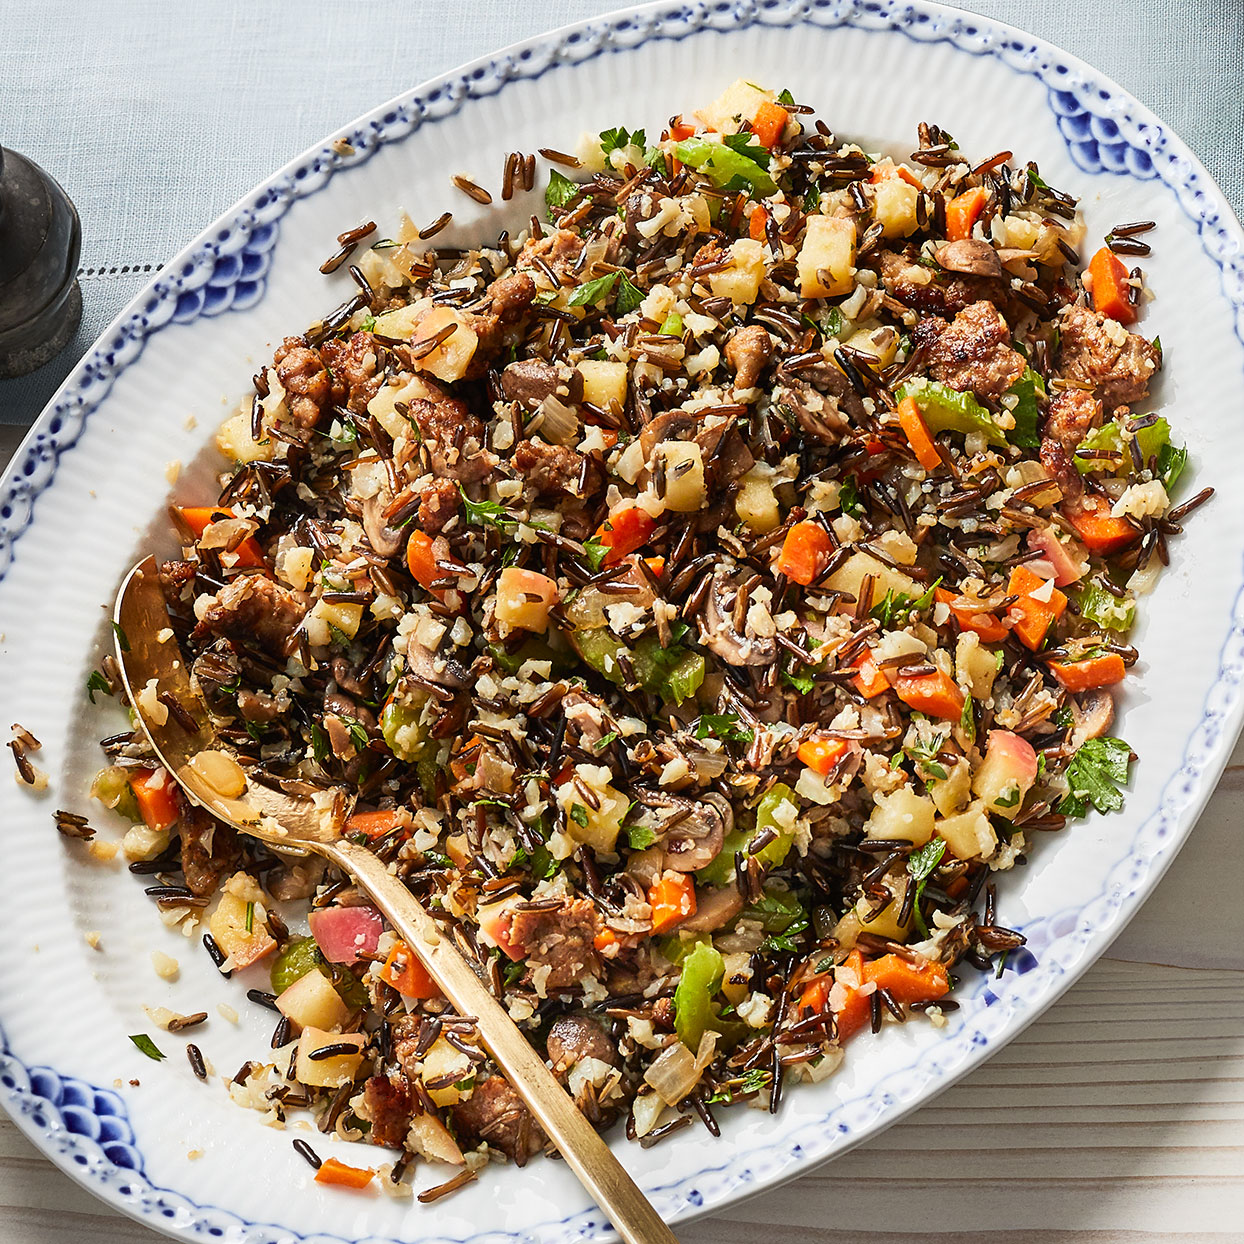 Sausage, Apple & Wild Rice Stuffing Andrea Kirkland M.S., RD